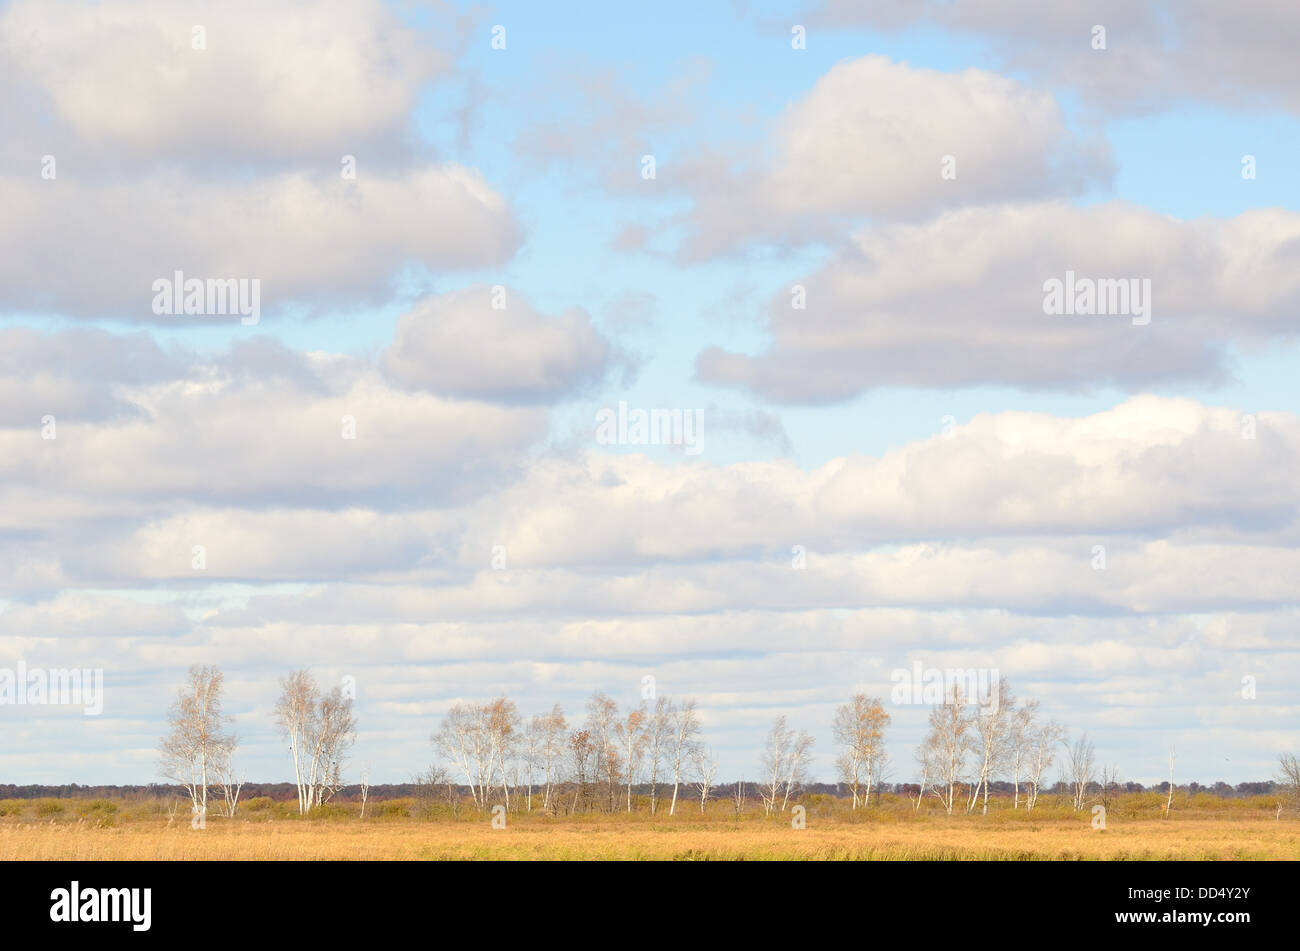 Birch Trees in the Fall with Cumulus Clouds in the Sky in Minnesota - Stock Image